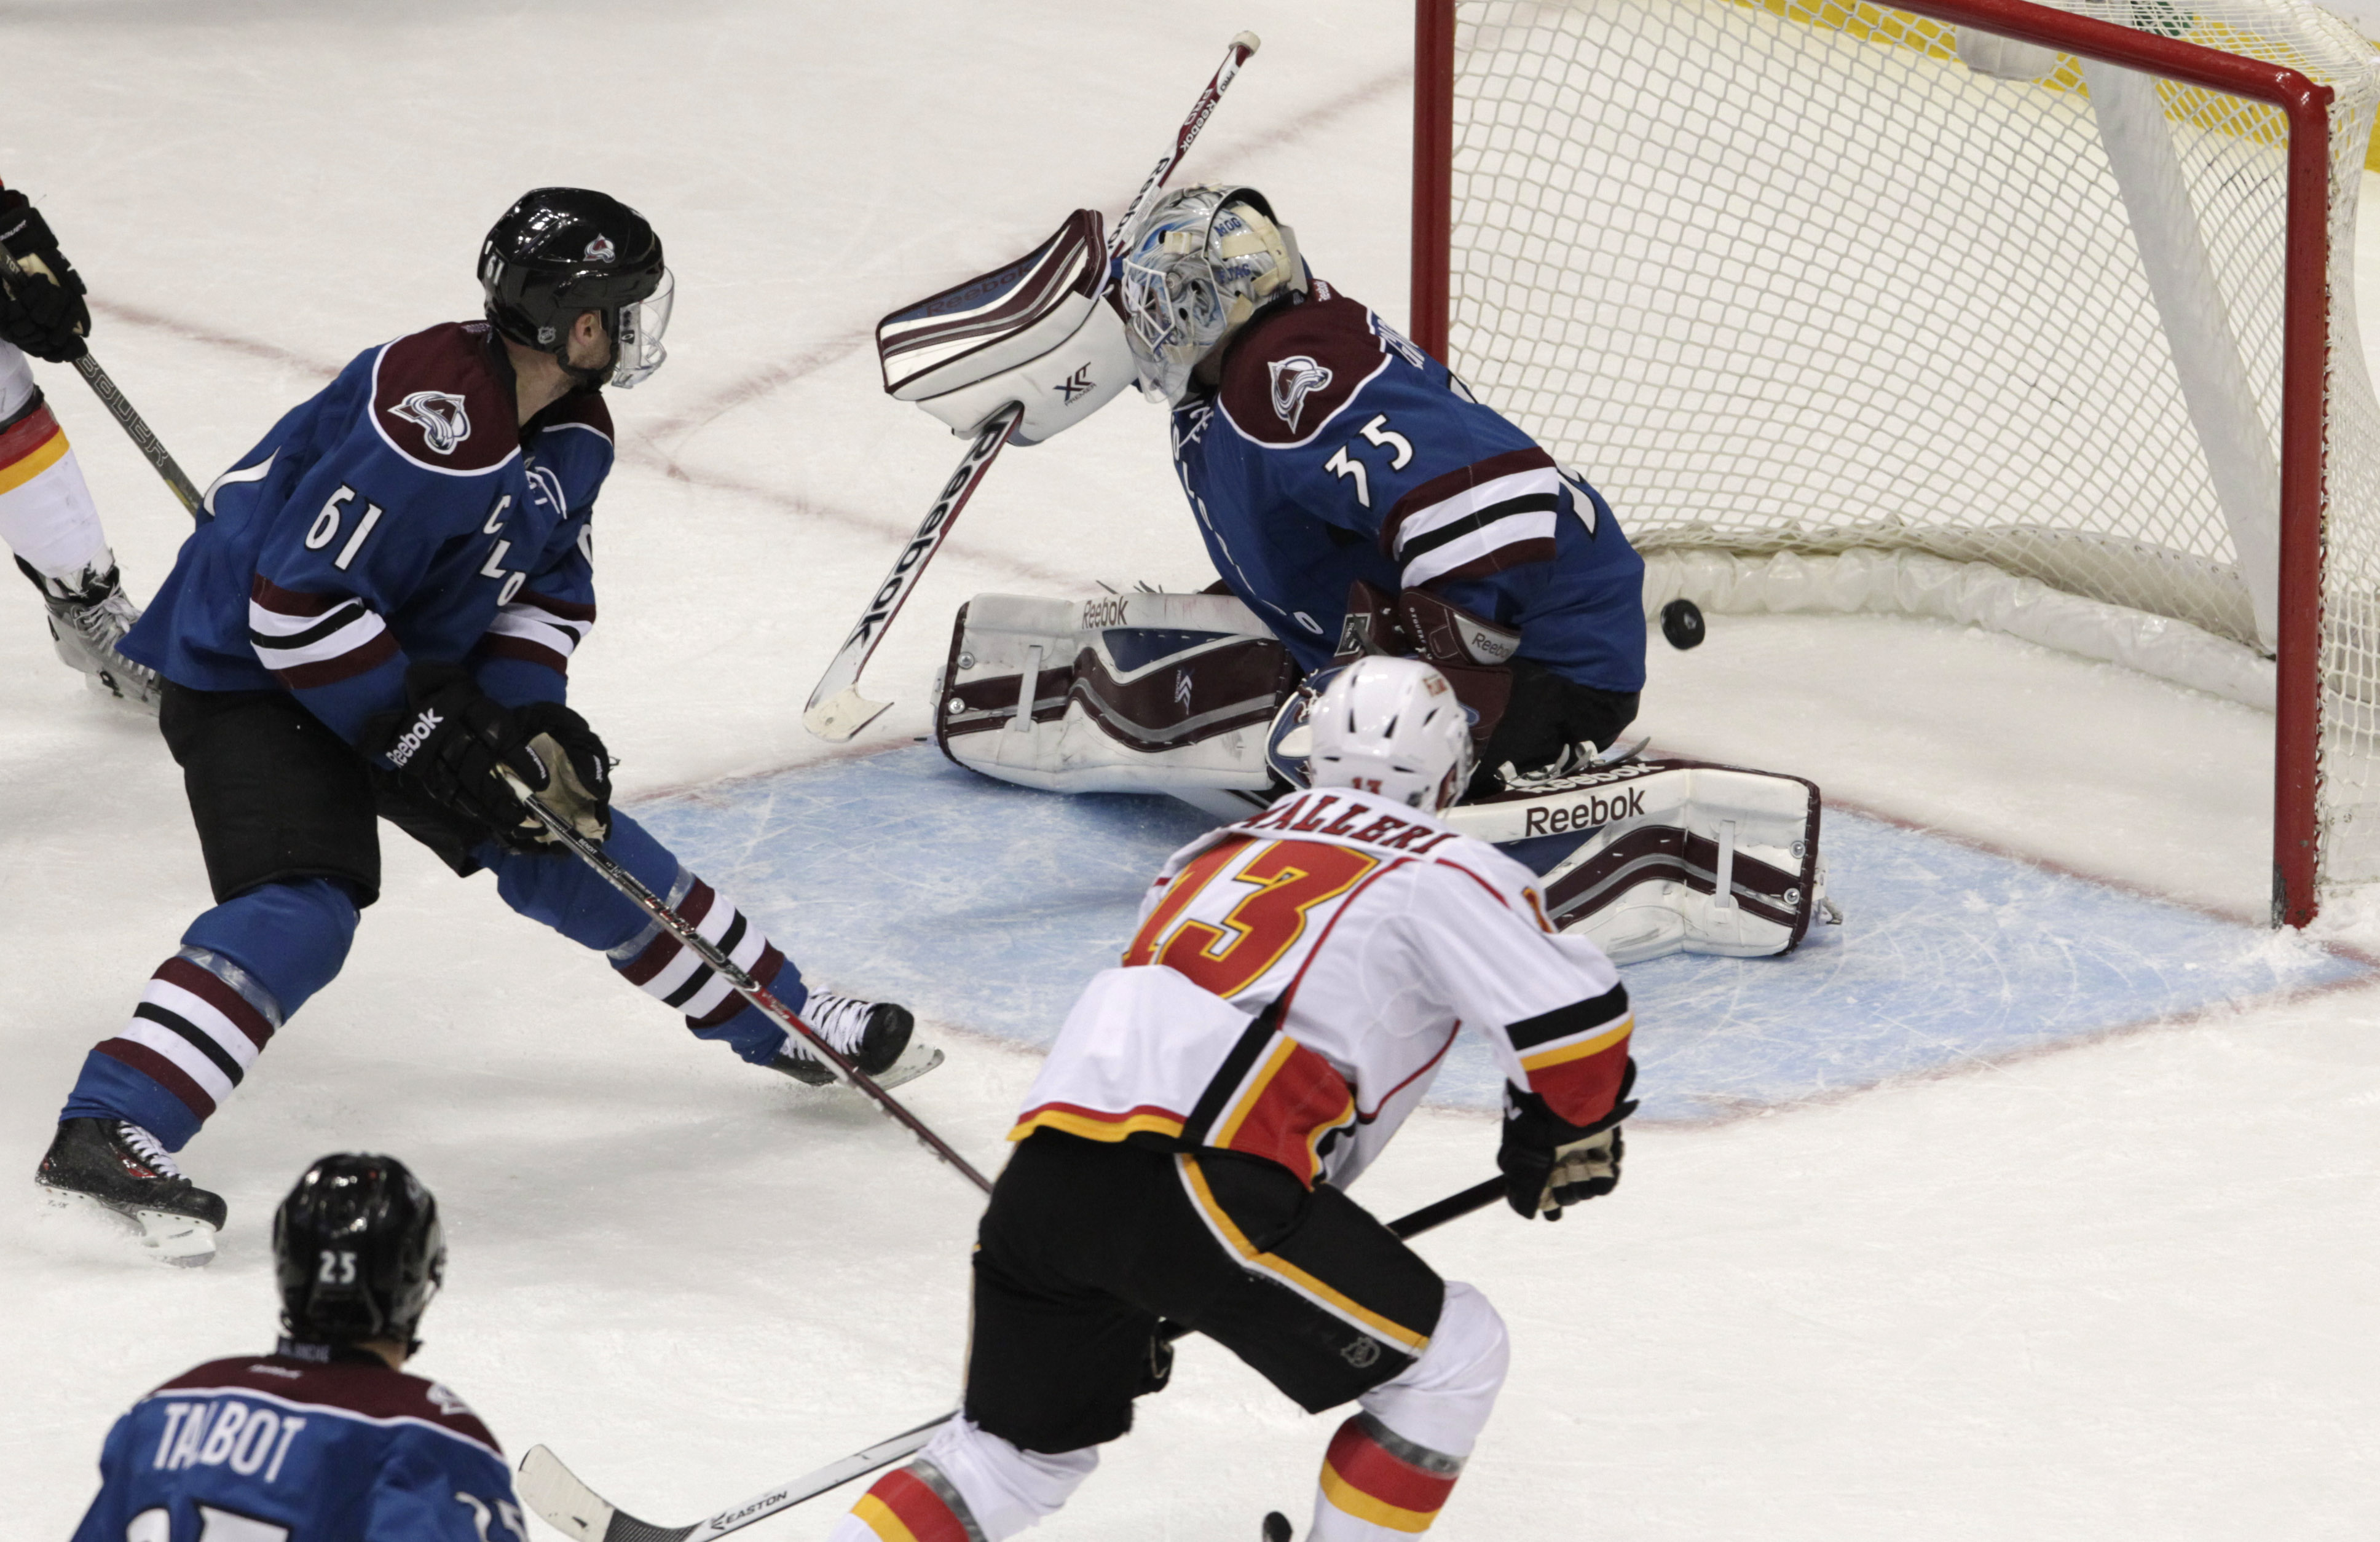 Cammalleri lifts Flames over Avalanche, 4-3